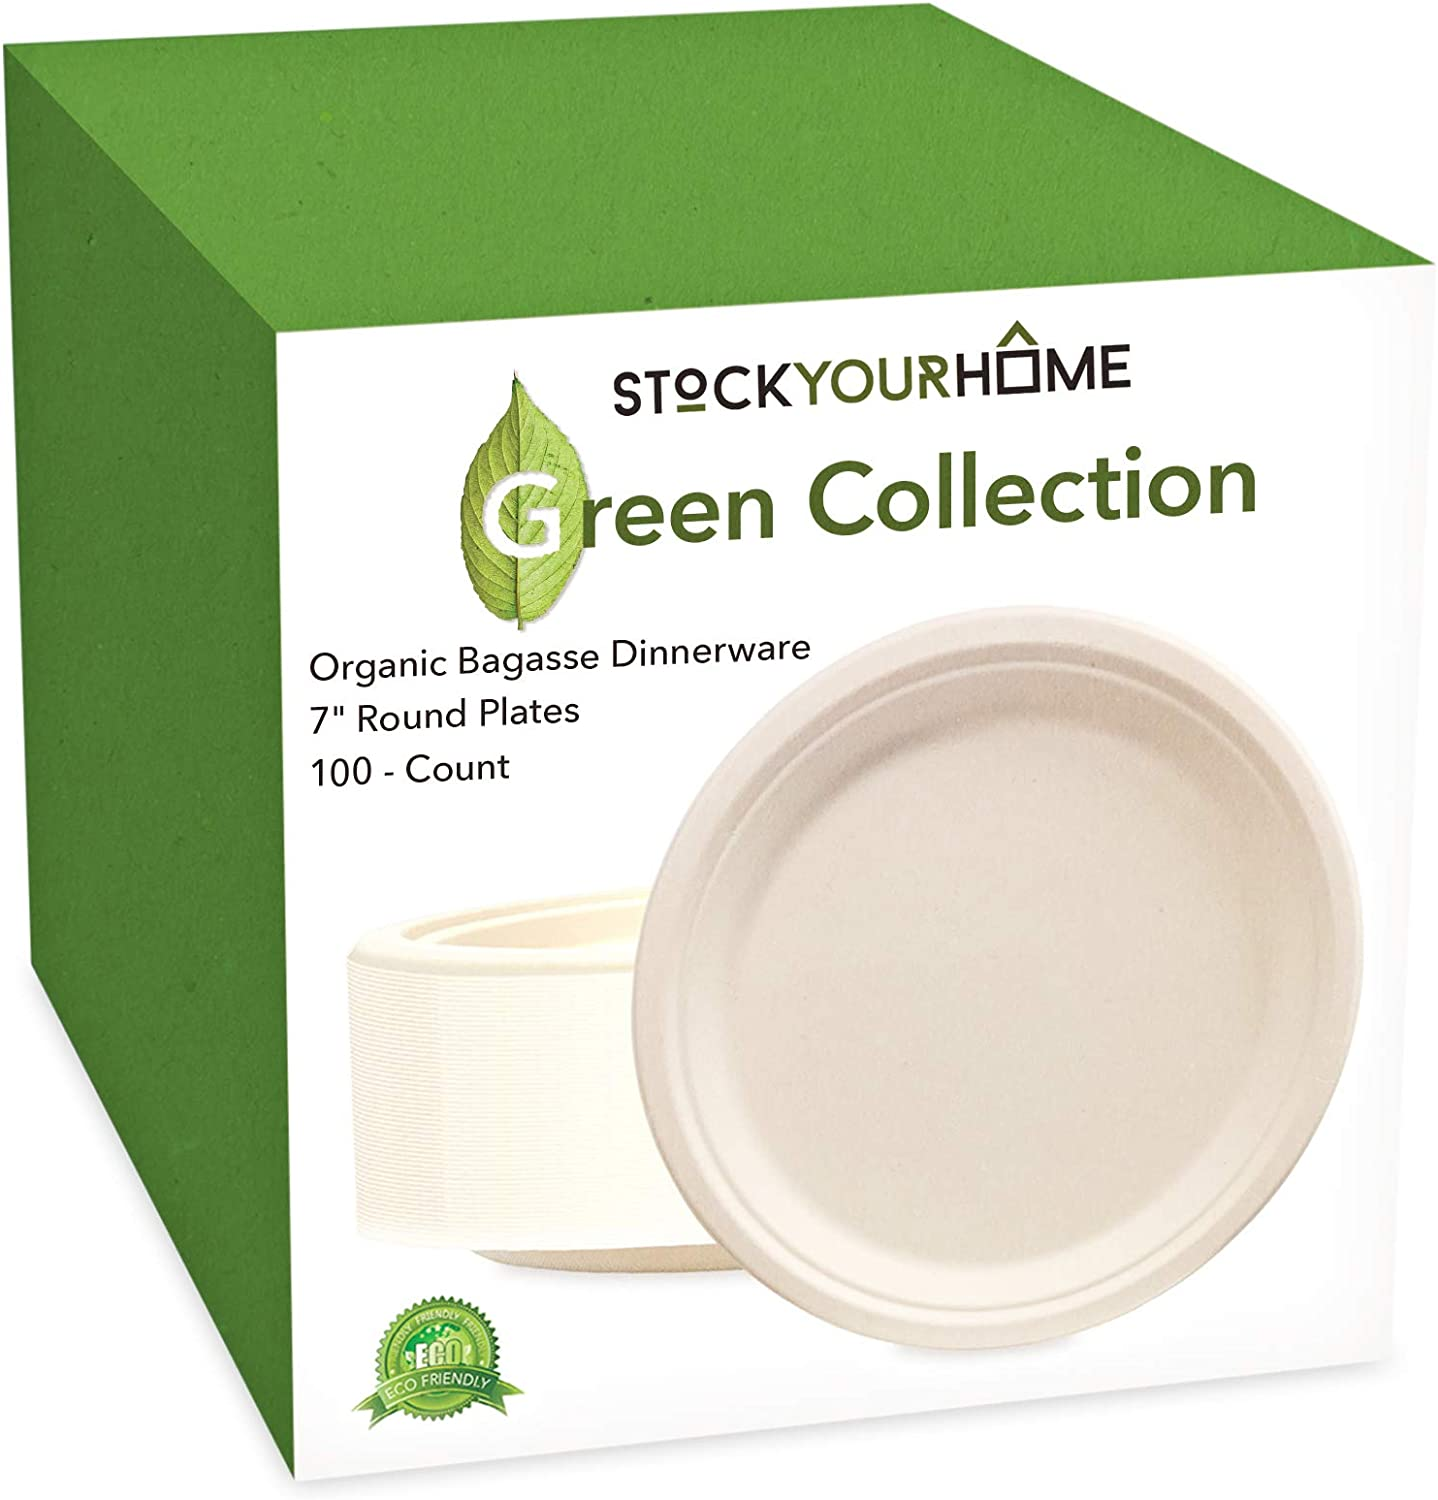 Stock Your Home 7 Inch Round Plates 100 Count Organic Bagasse Plates Made of Natural Sugarcane Fibers - Eco Friendly, Heavy Duty Disposable Plates for Parties, Catering and Everyday Use